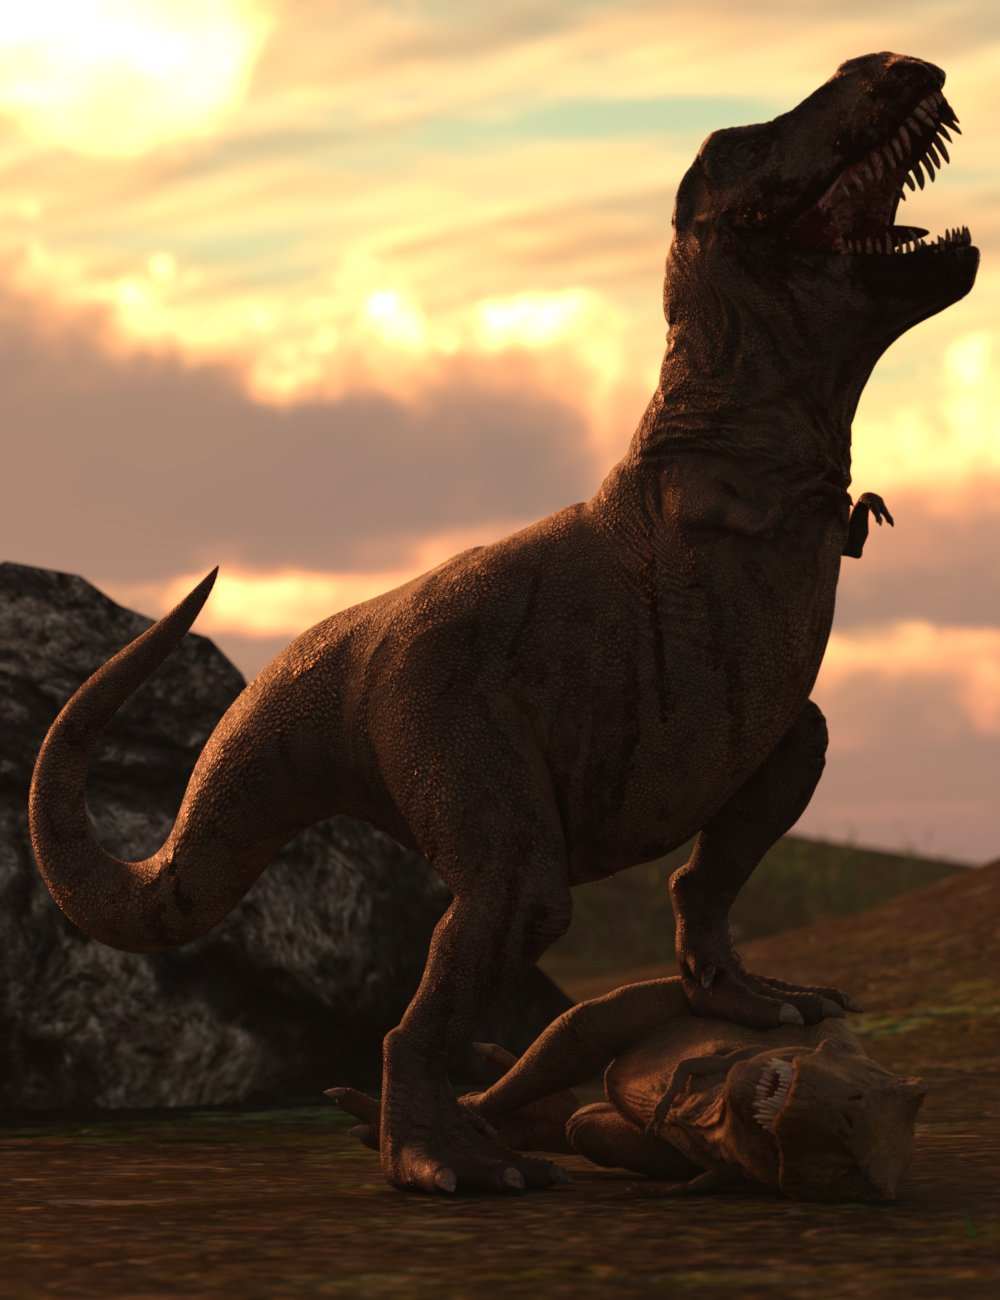 Jurassic Hierarchical Poses for Rex HD by: Ensary, 3D Models by Daz 3D